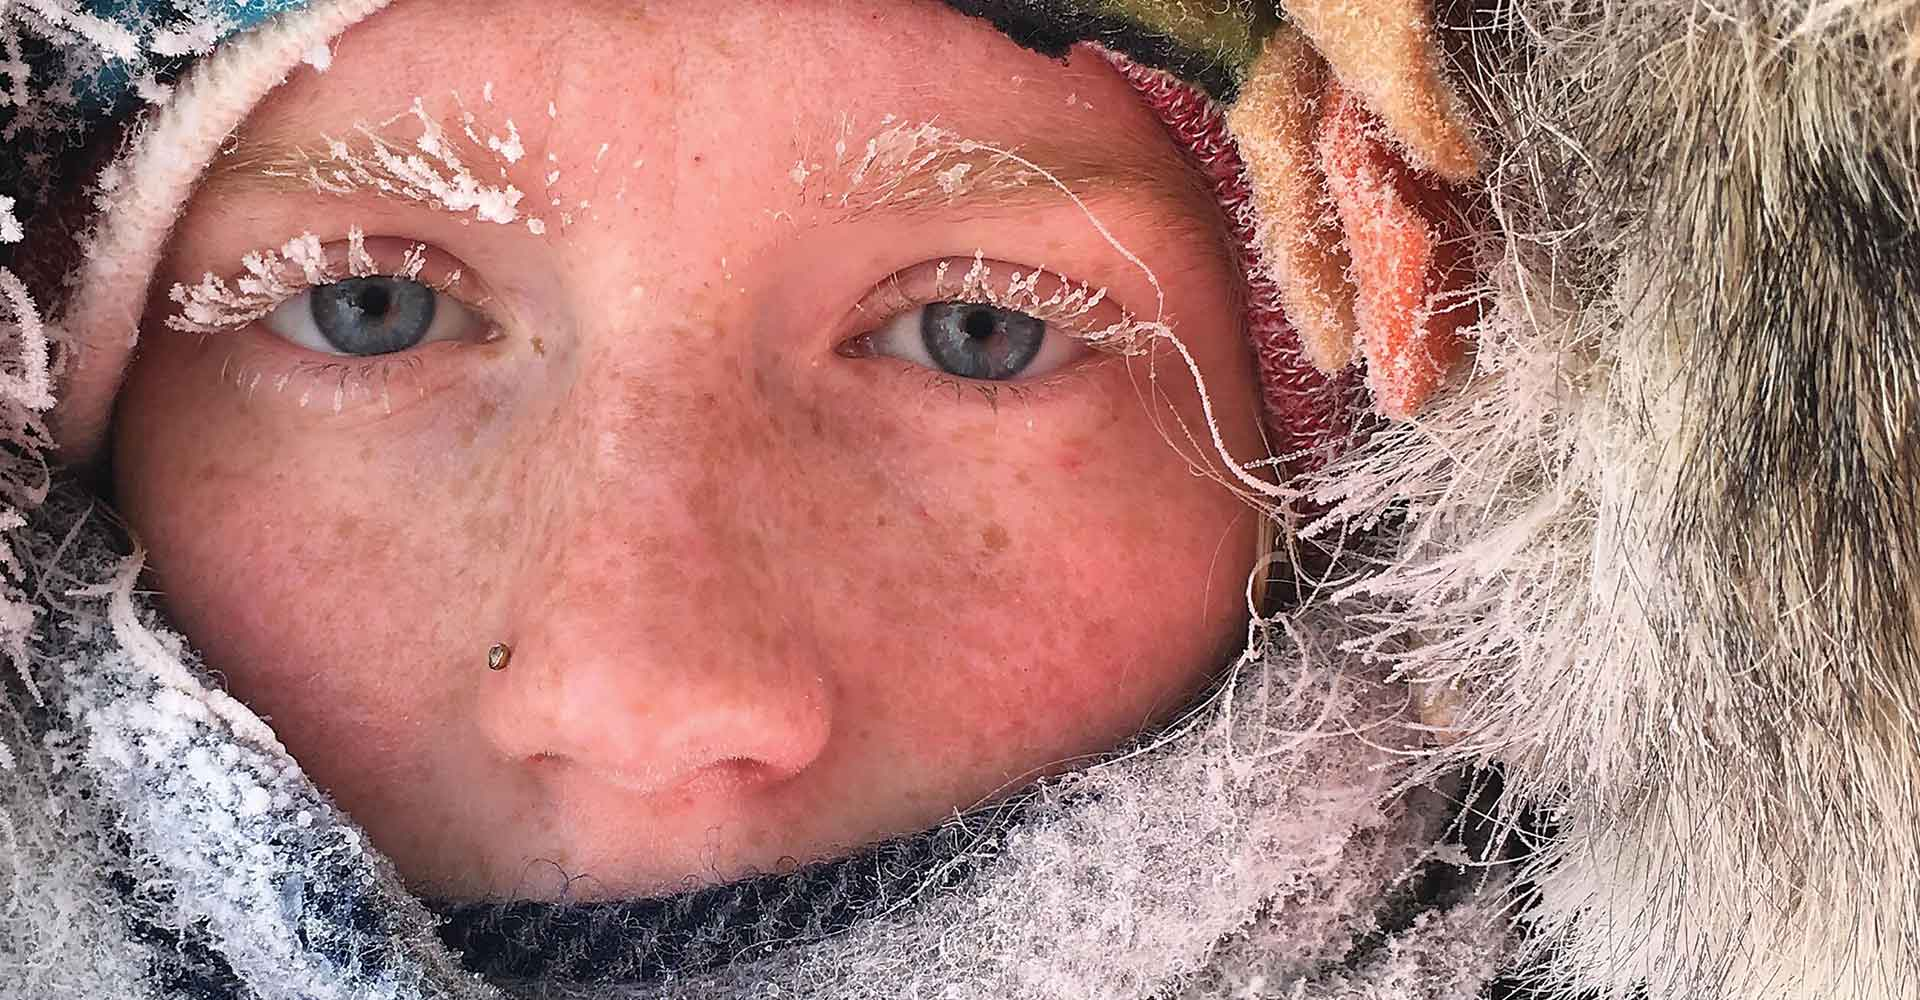 Close up of a face surrounded by a parka with frost on eyelashes and eyebrows.